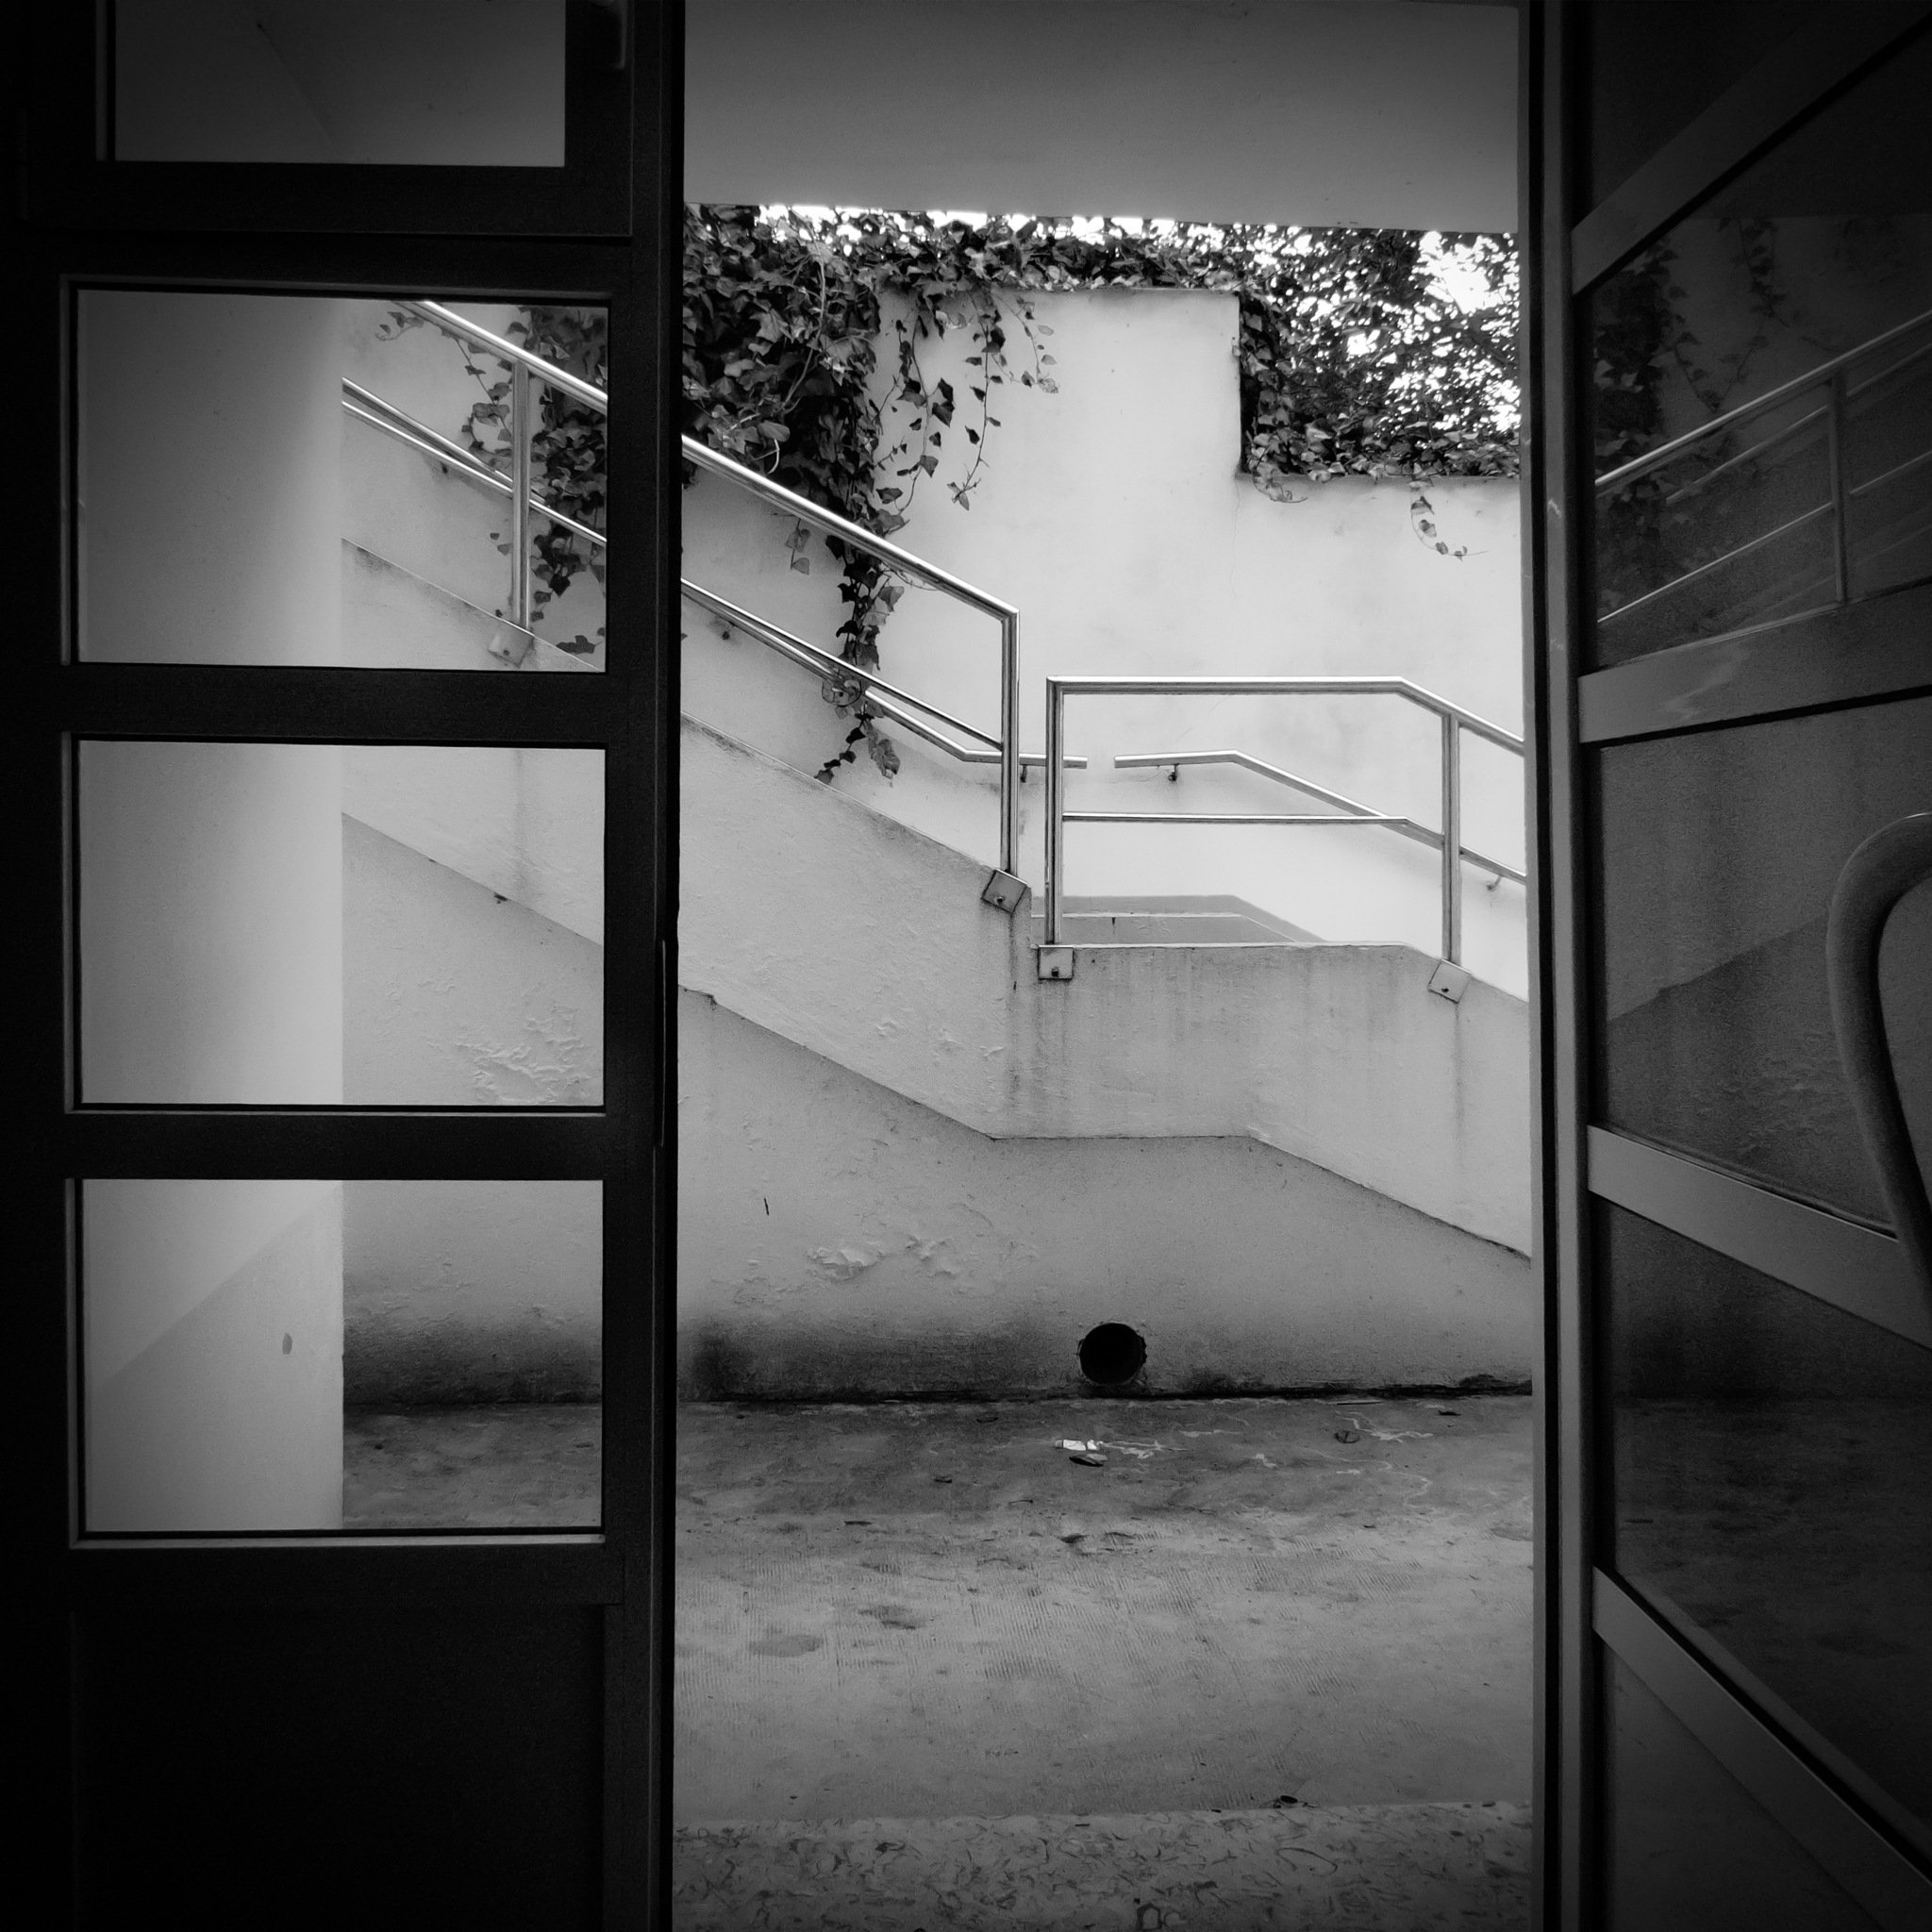 Untitled by rodriguezchaparro